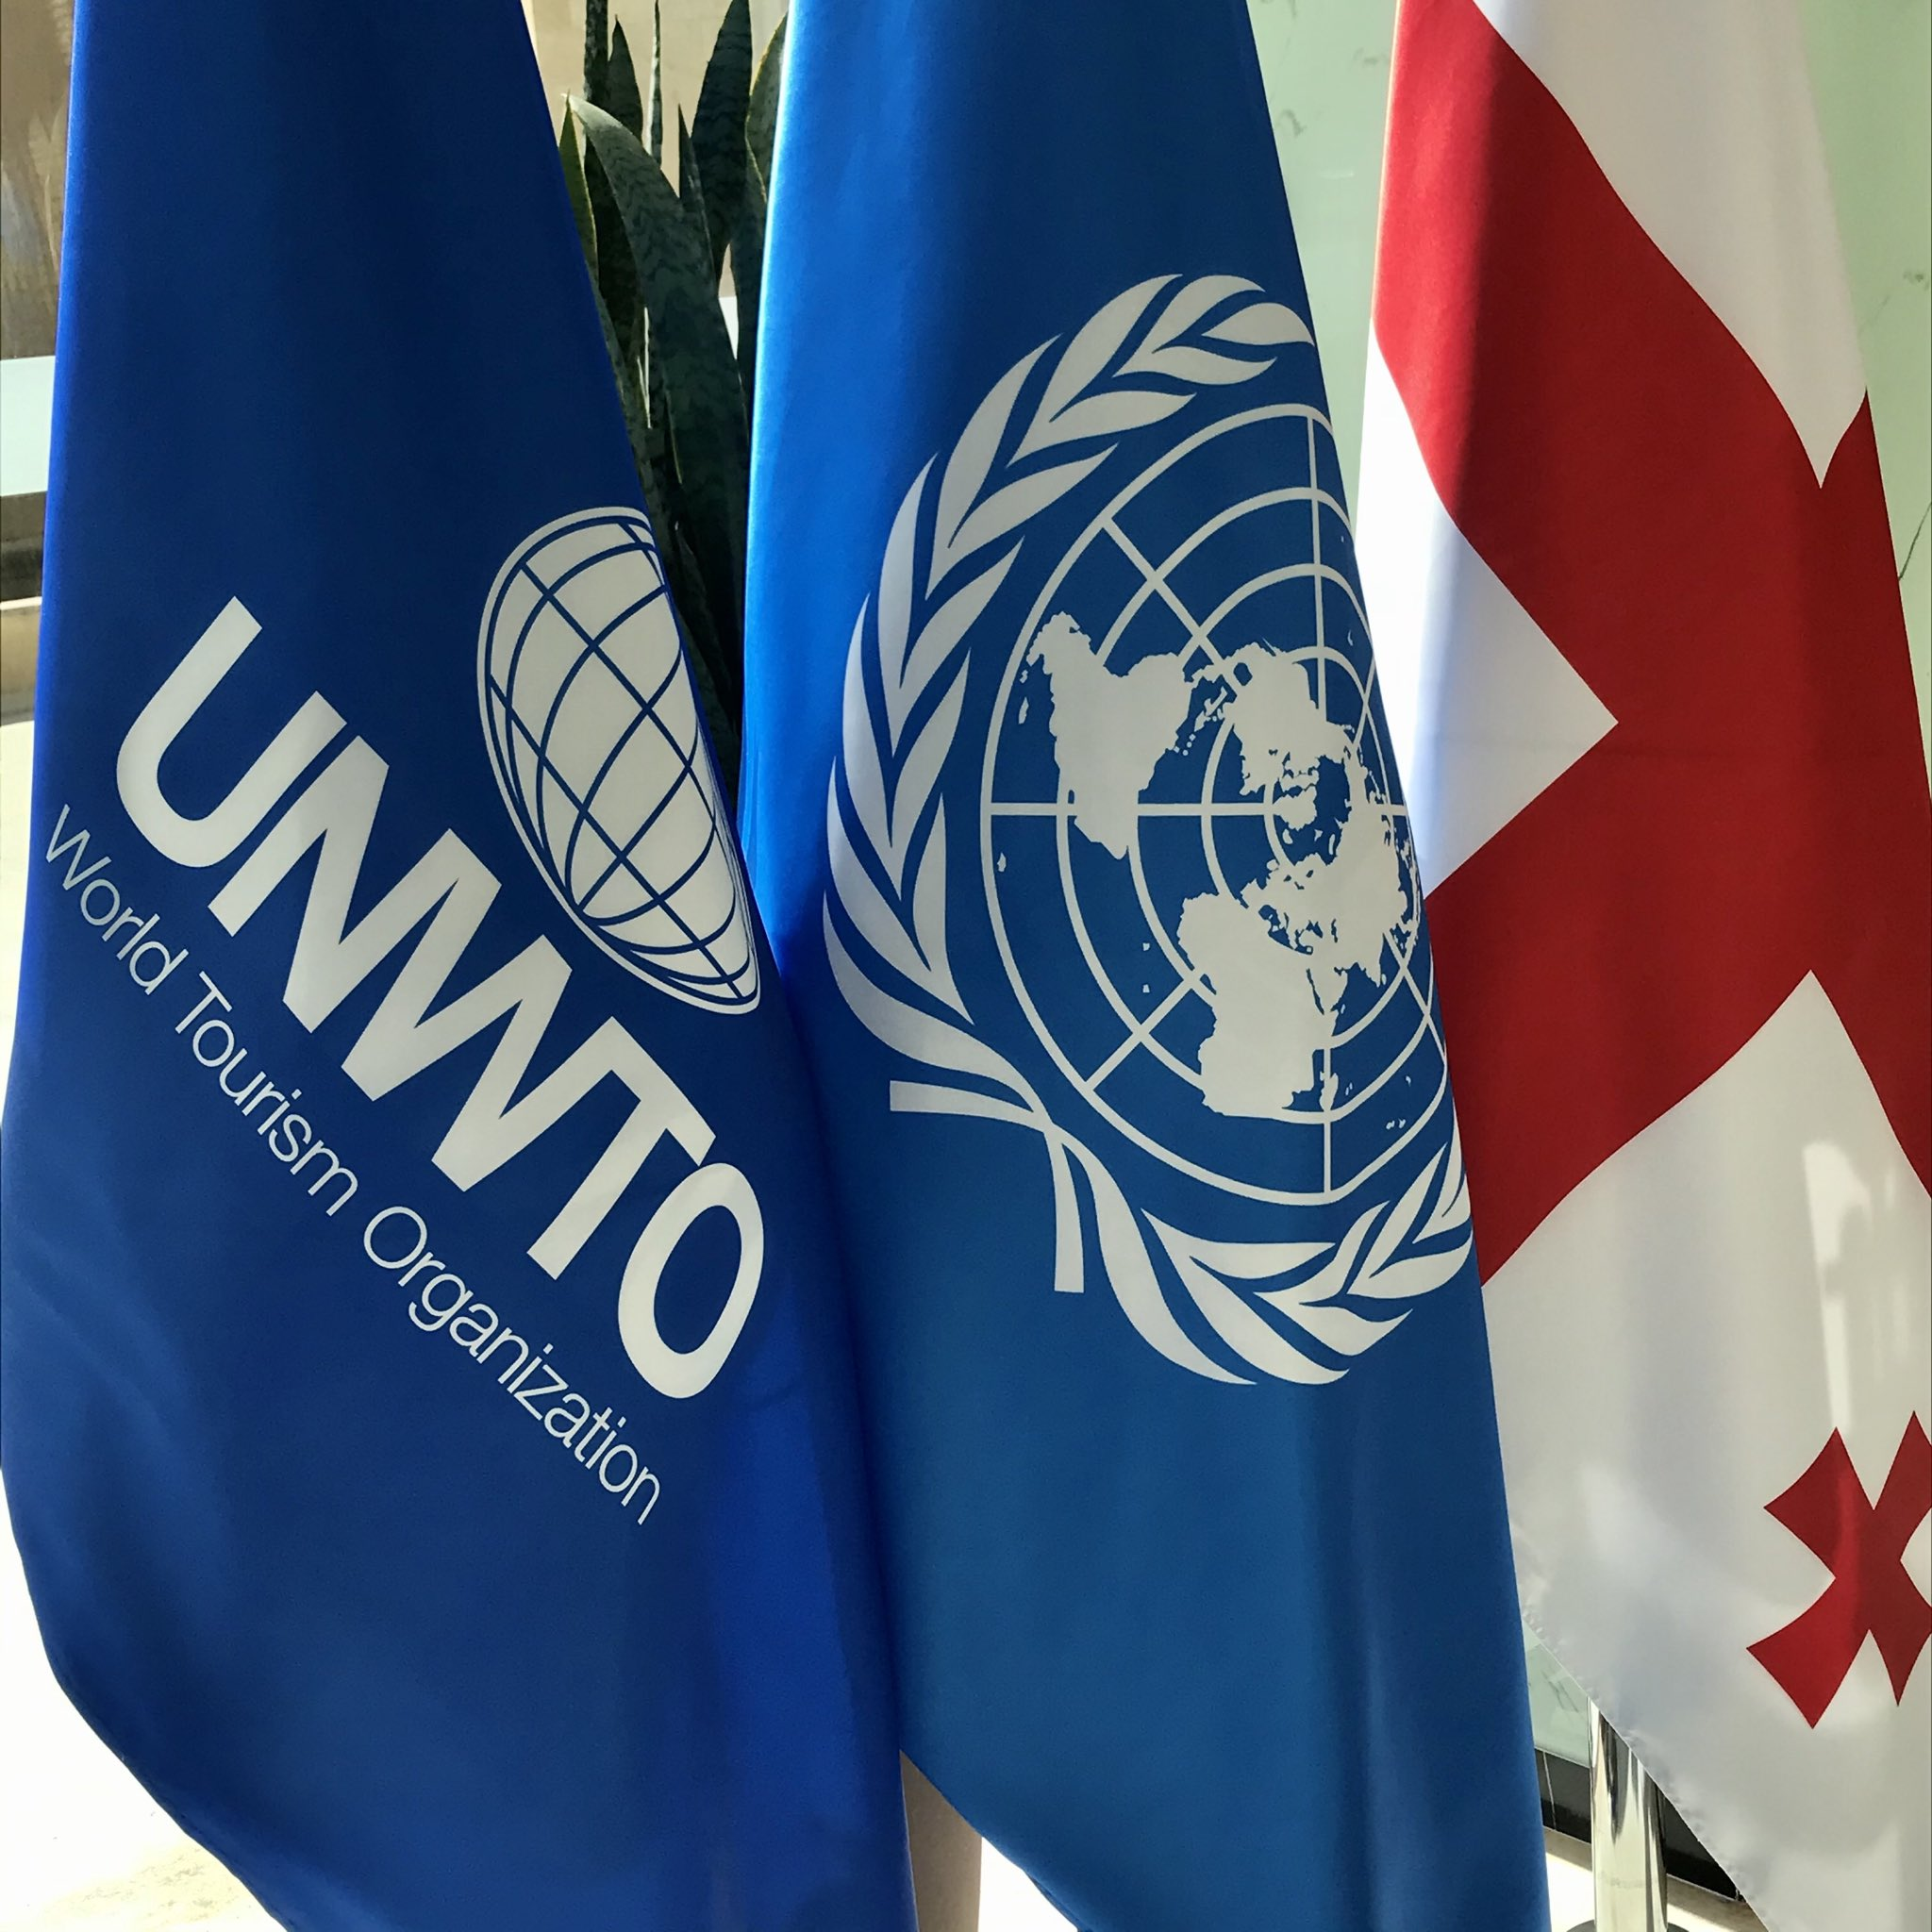 UNWTO 112th Executive Council Meeting ongoing in Tbilisi